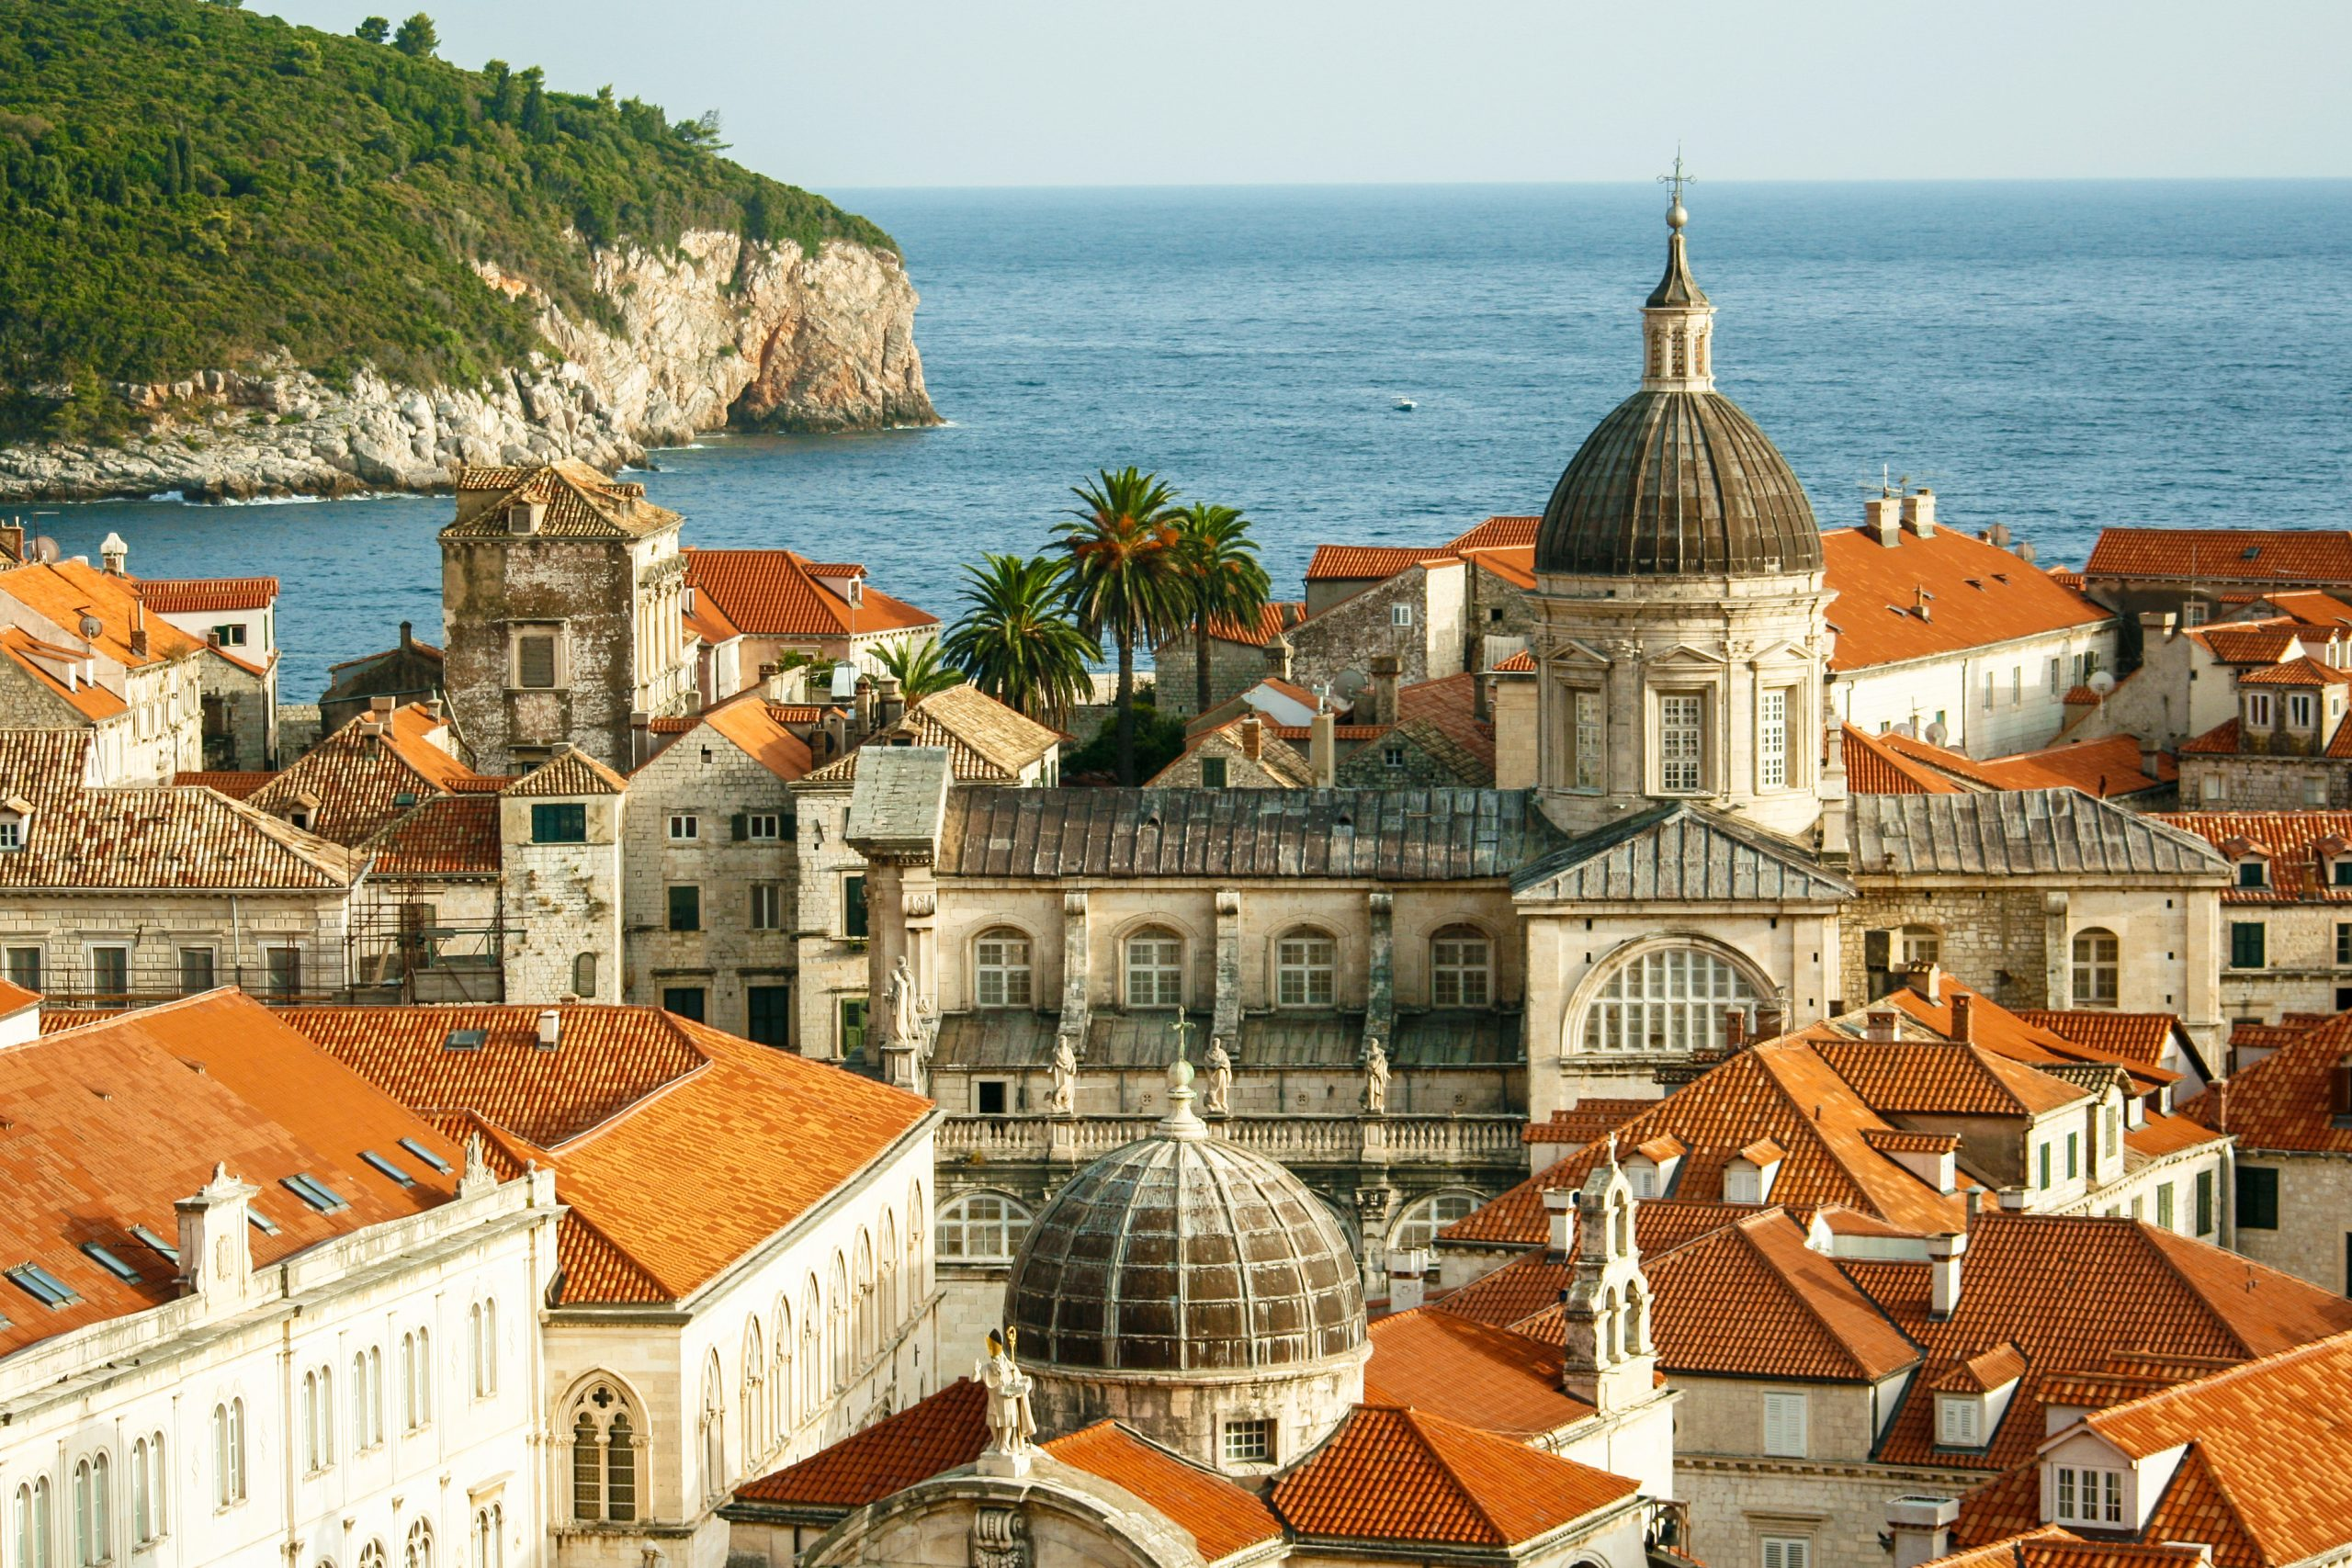 Explore The Old City Of Dubrovnik (kings Landing) On Your Dubrovnik Game Of Thrones And History Tour